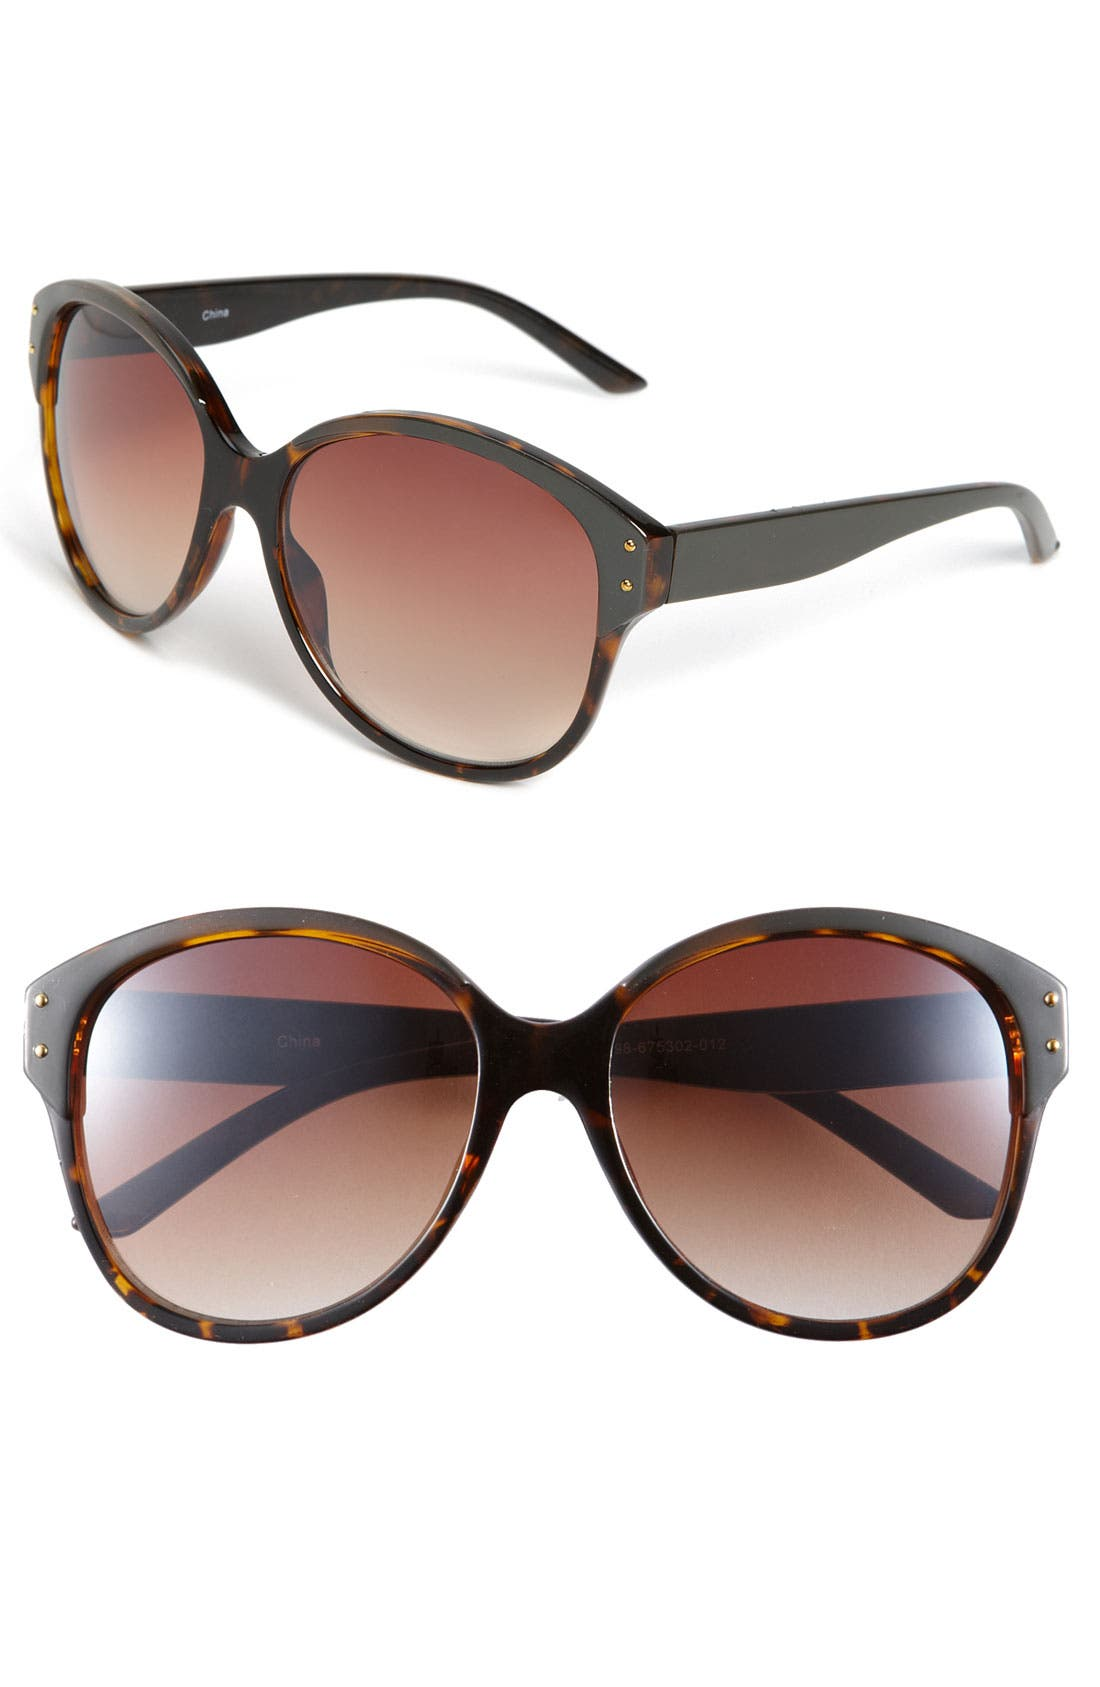 'Theresa' Sunglasses,                             Main thumbnail 1, color,                             240